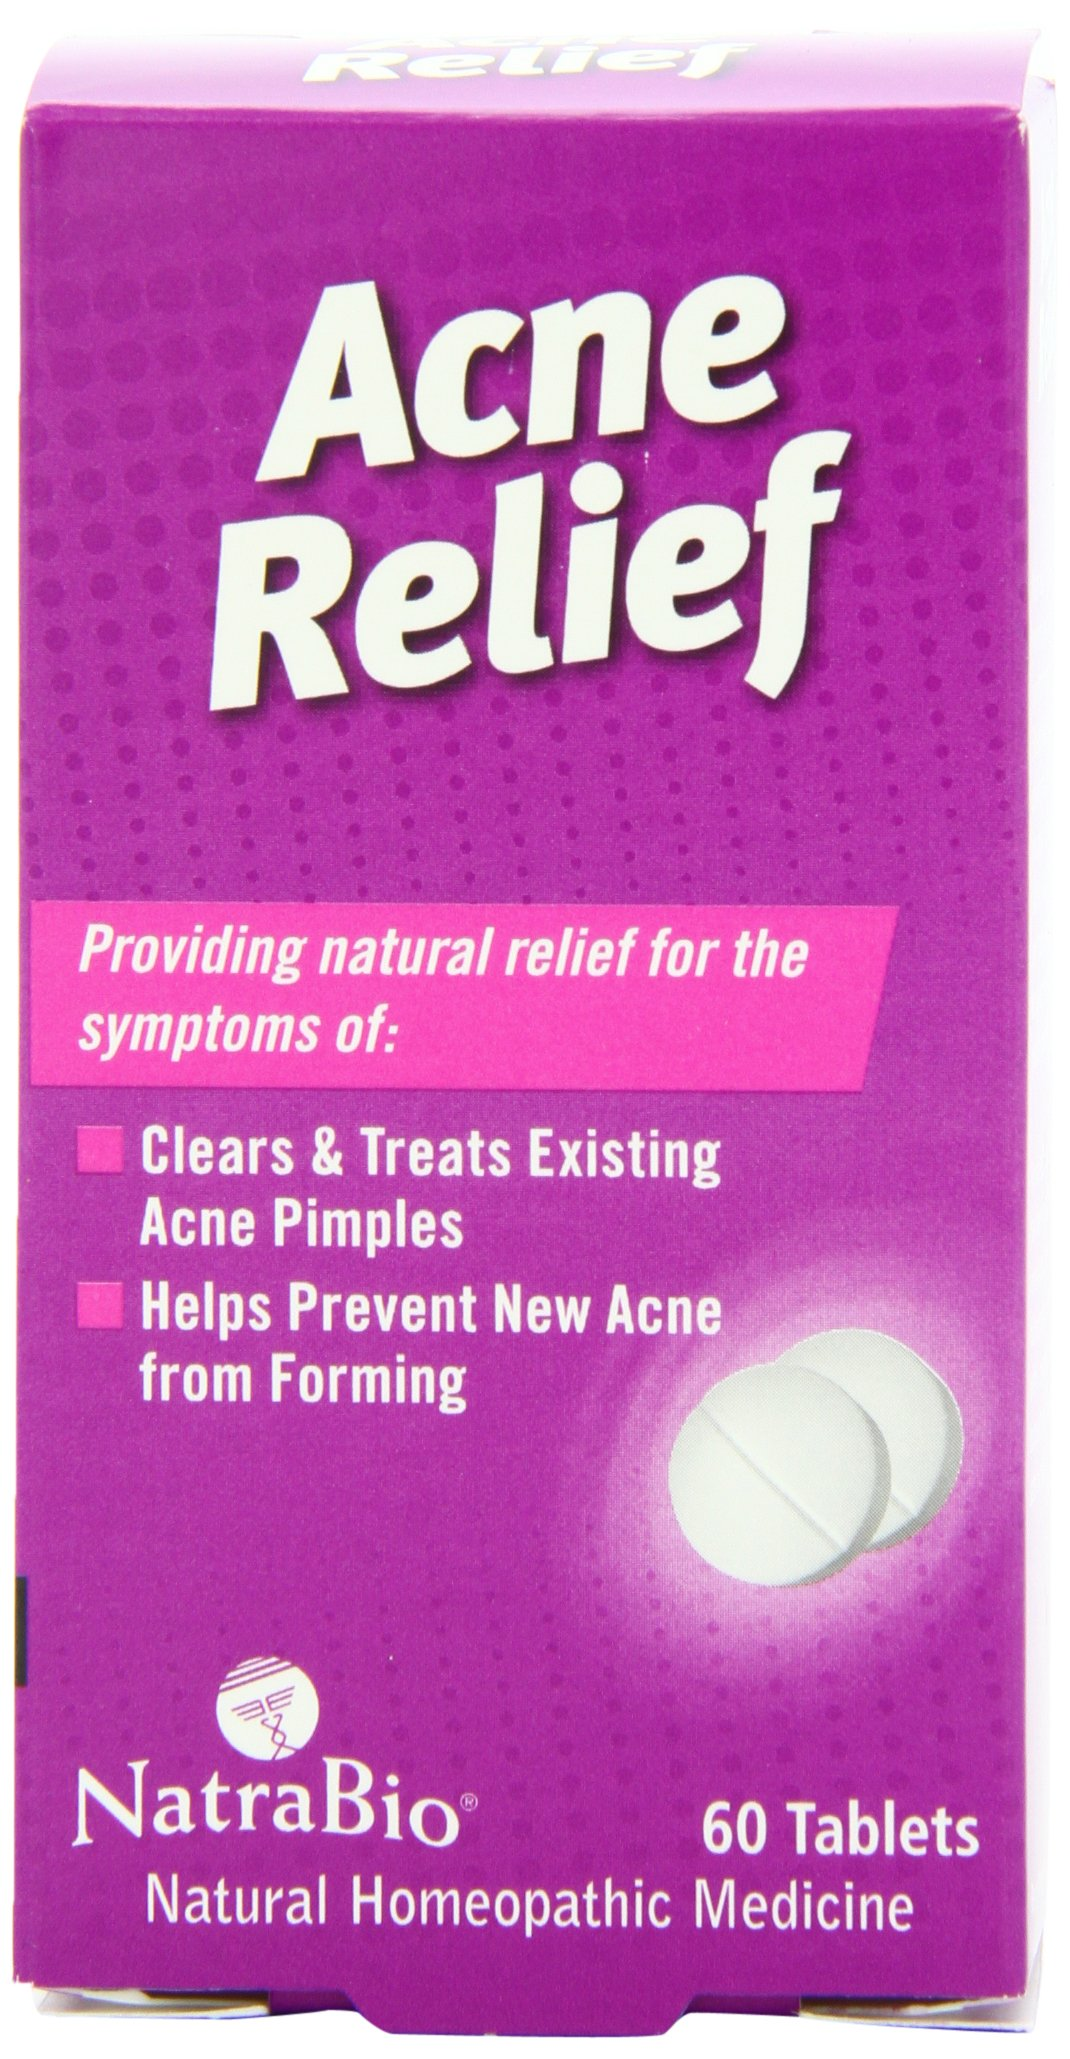 Natrabio Acne Relief Tablets, 60 Count